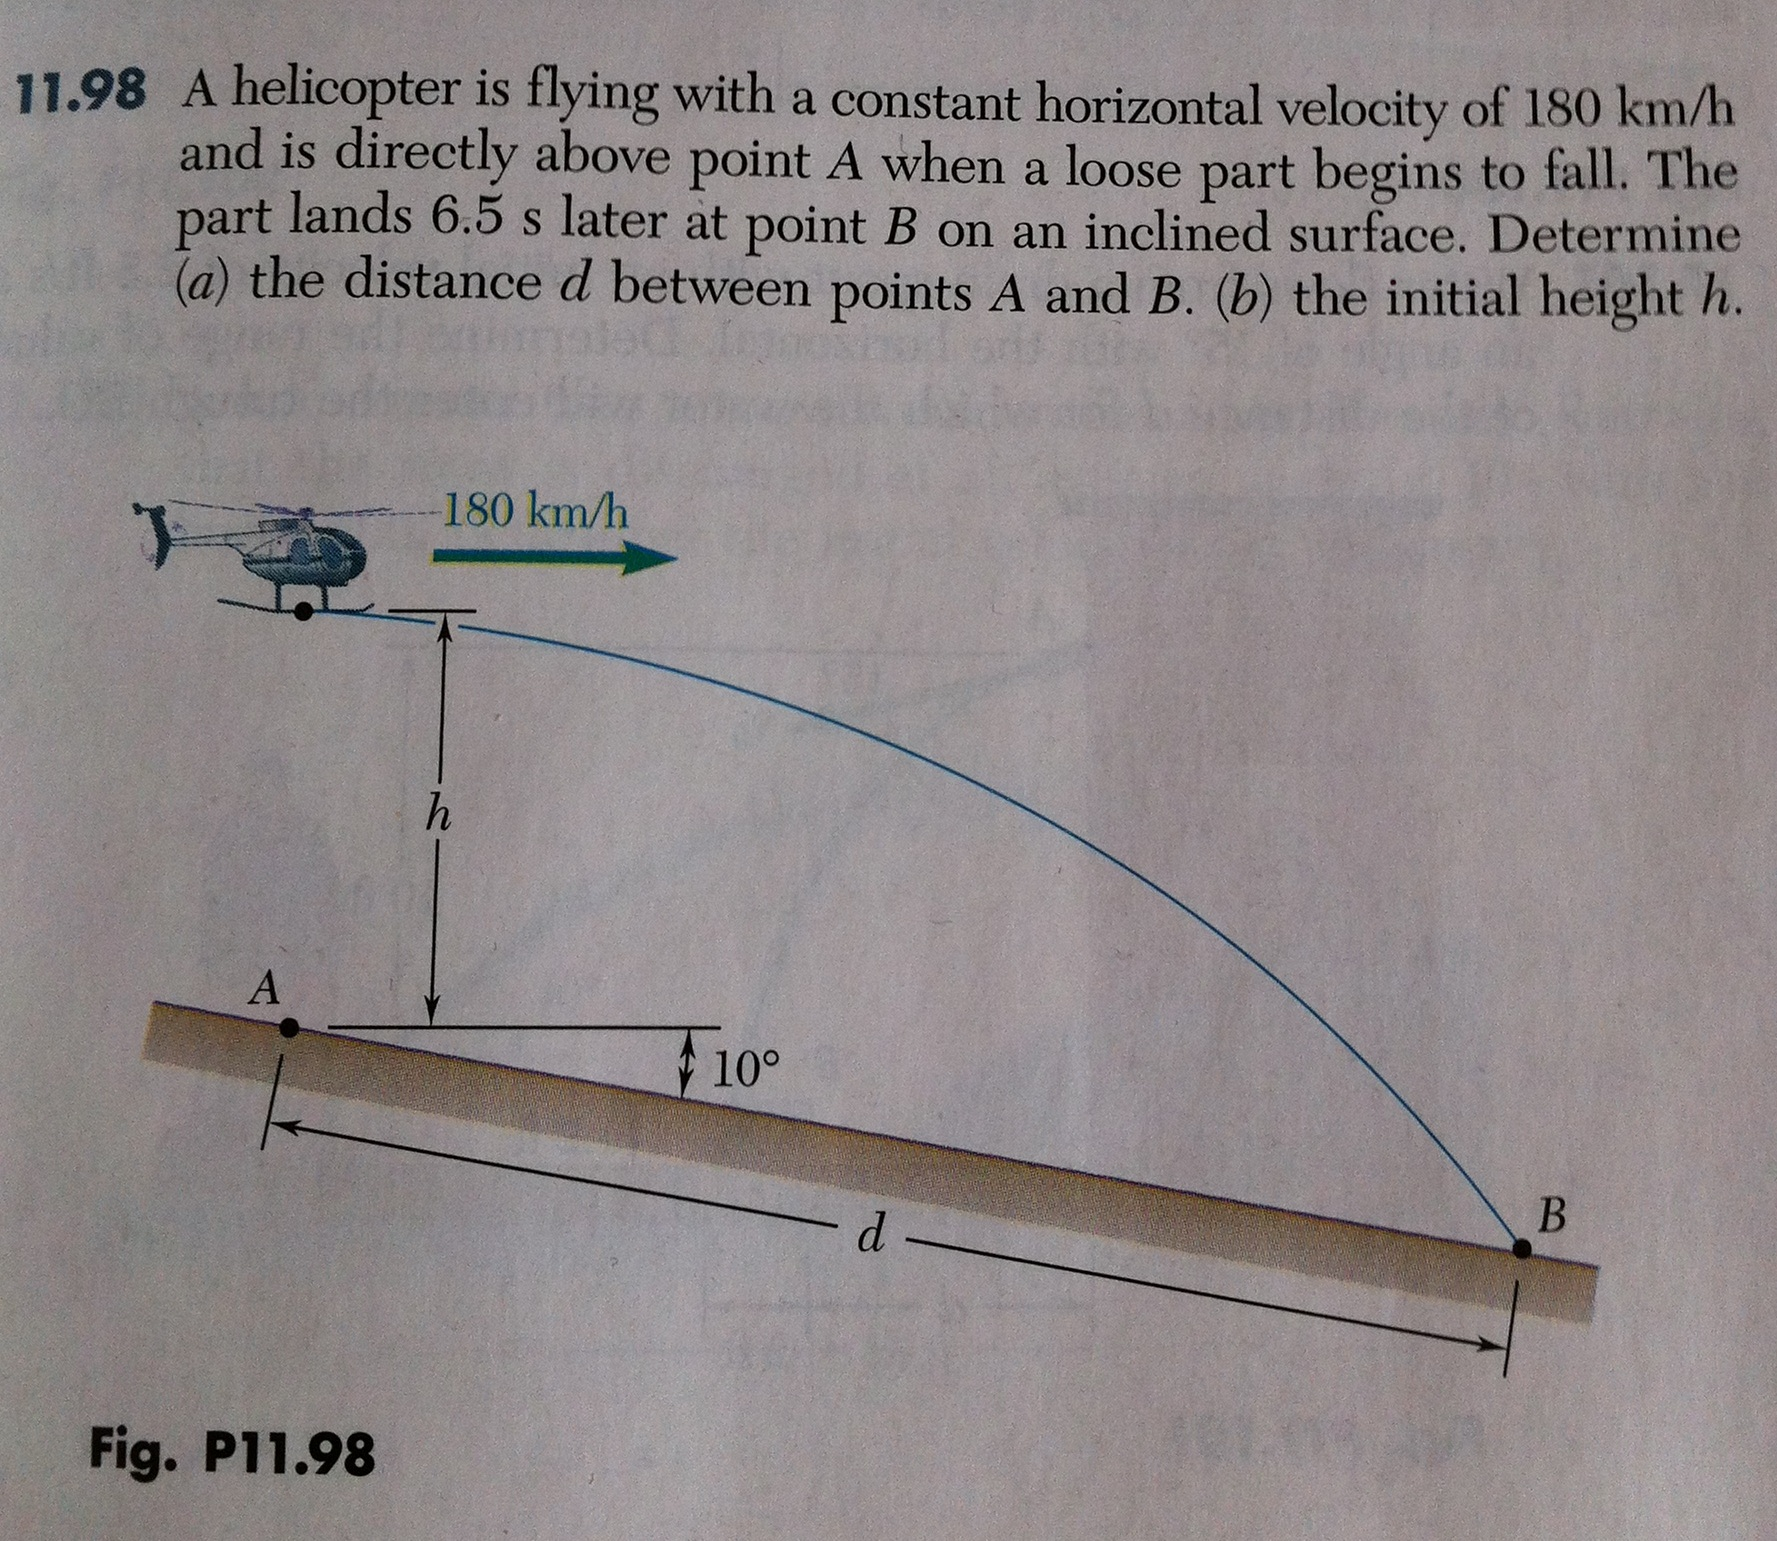 A helicopter is flying with a constant horizontal